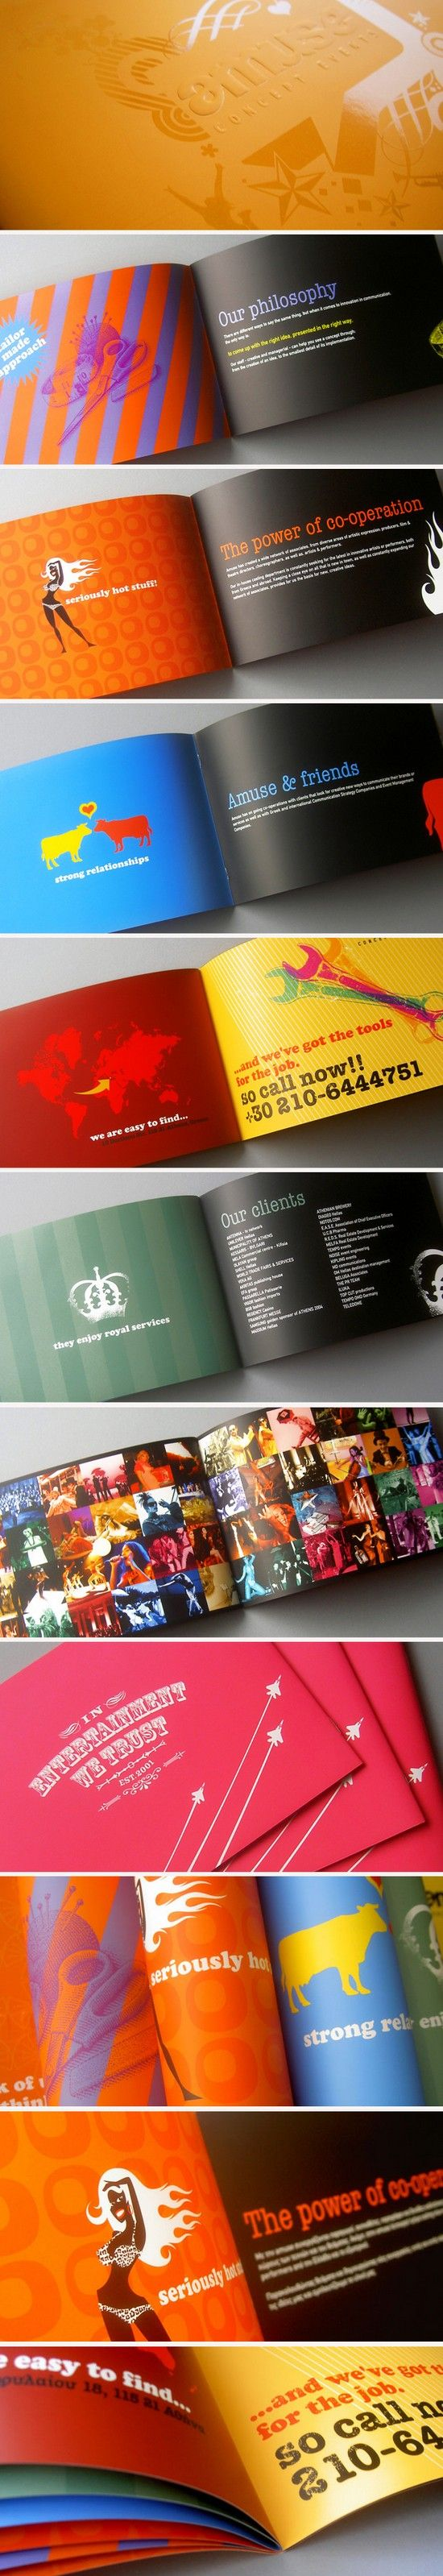 Cool Catalogue & Brochure Design | Bloggs74